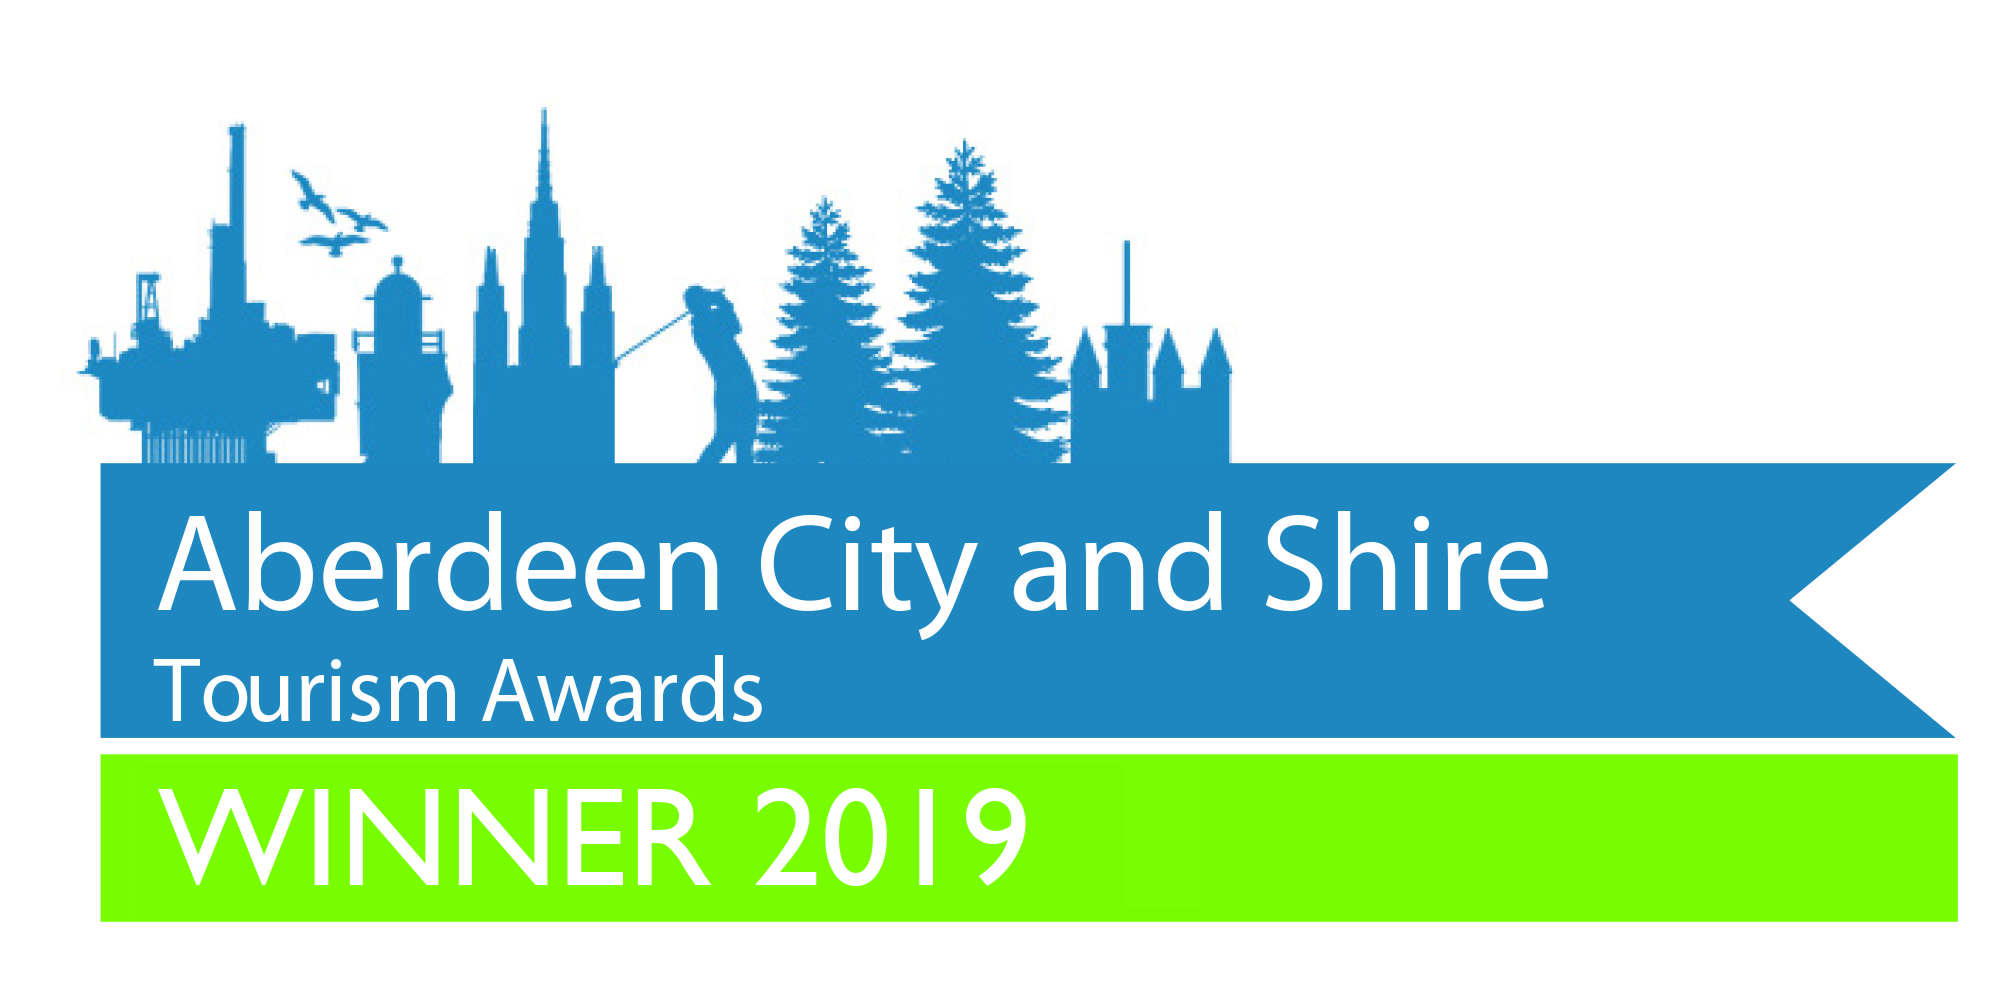 Aberdeen City and Shire Tourism Award 2019 Winner